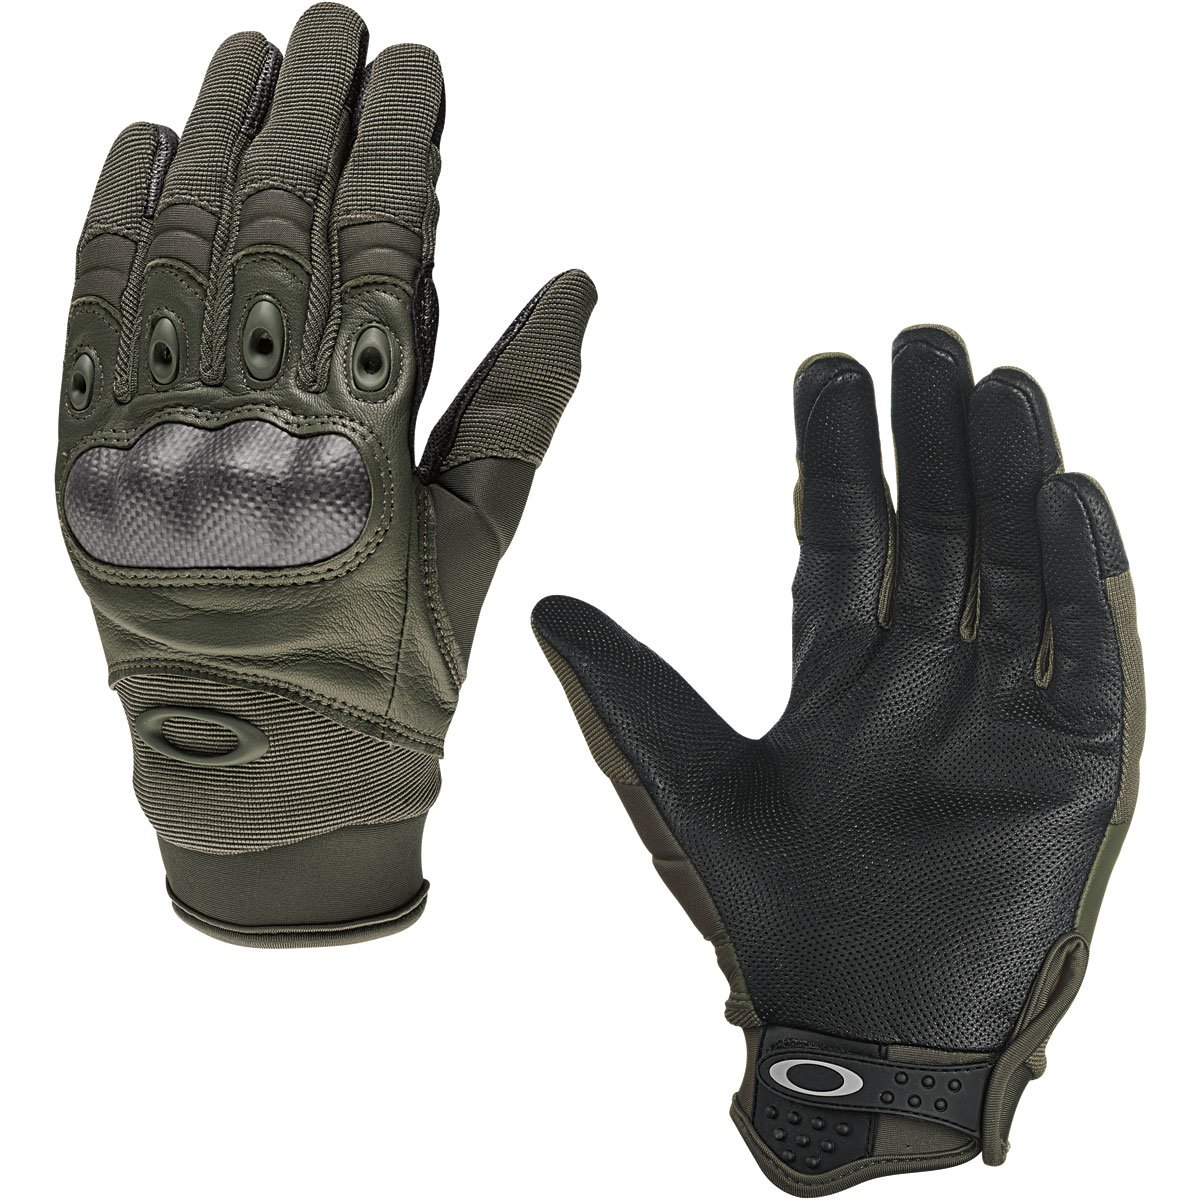 Oakley Mens Factory Pilot Glove, Foliage Green, X-Small